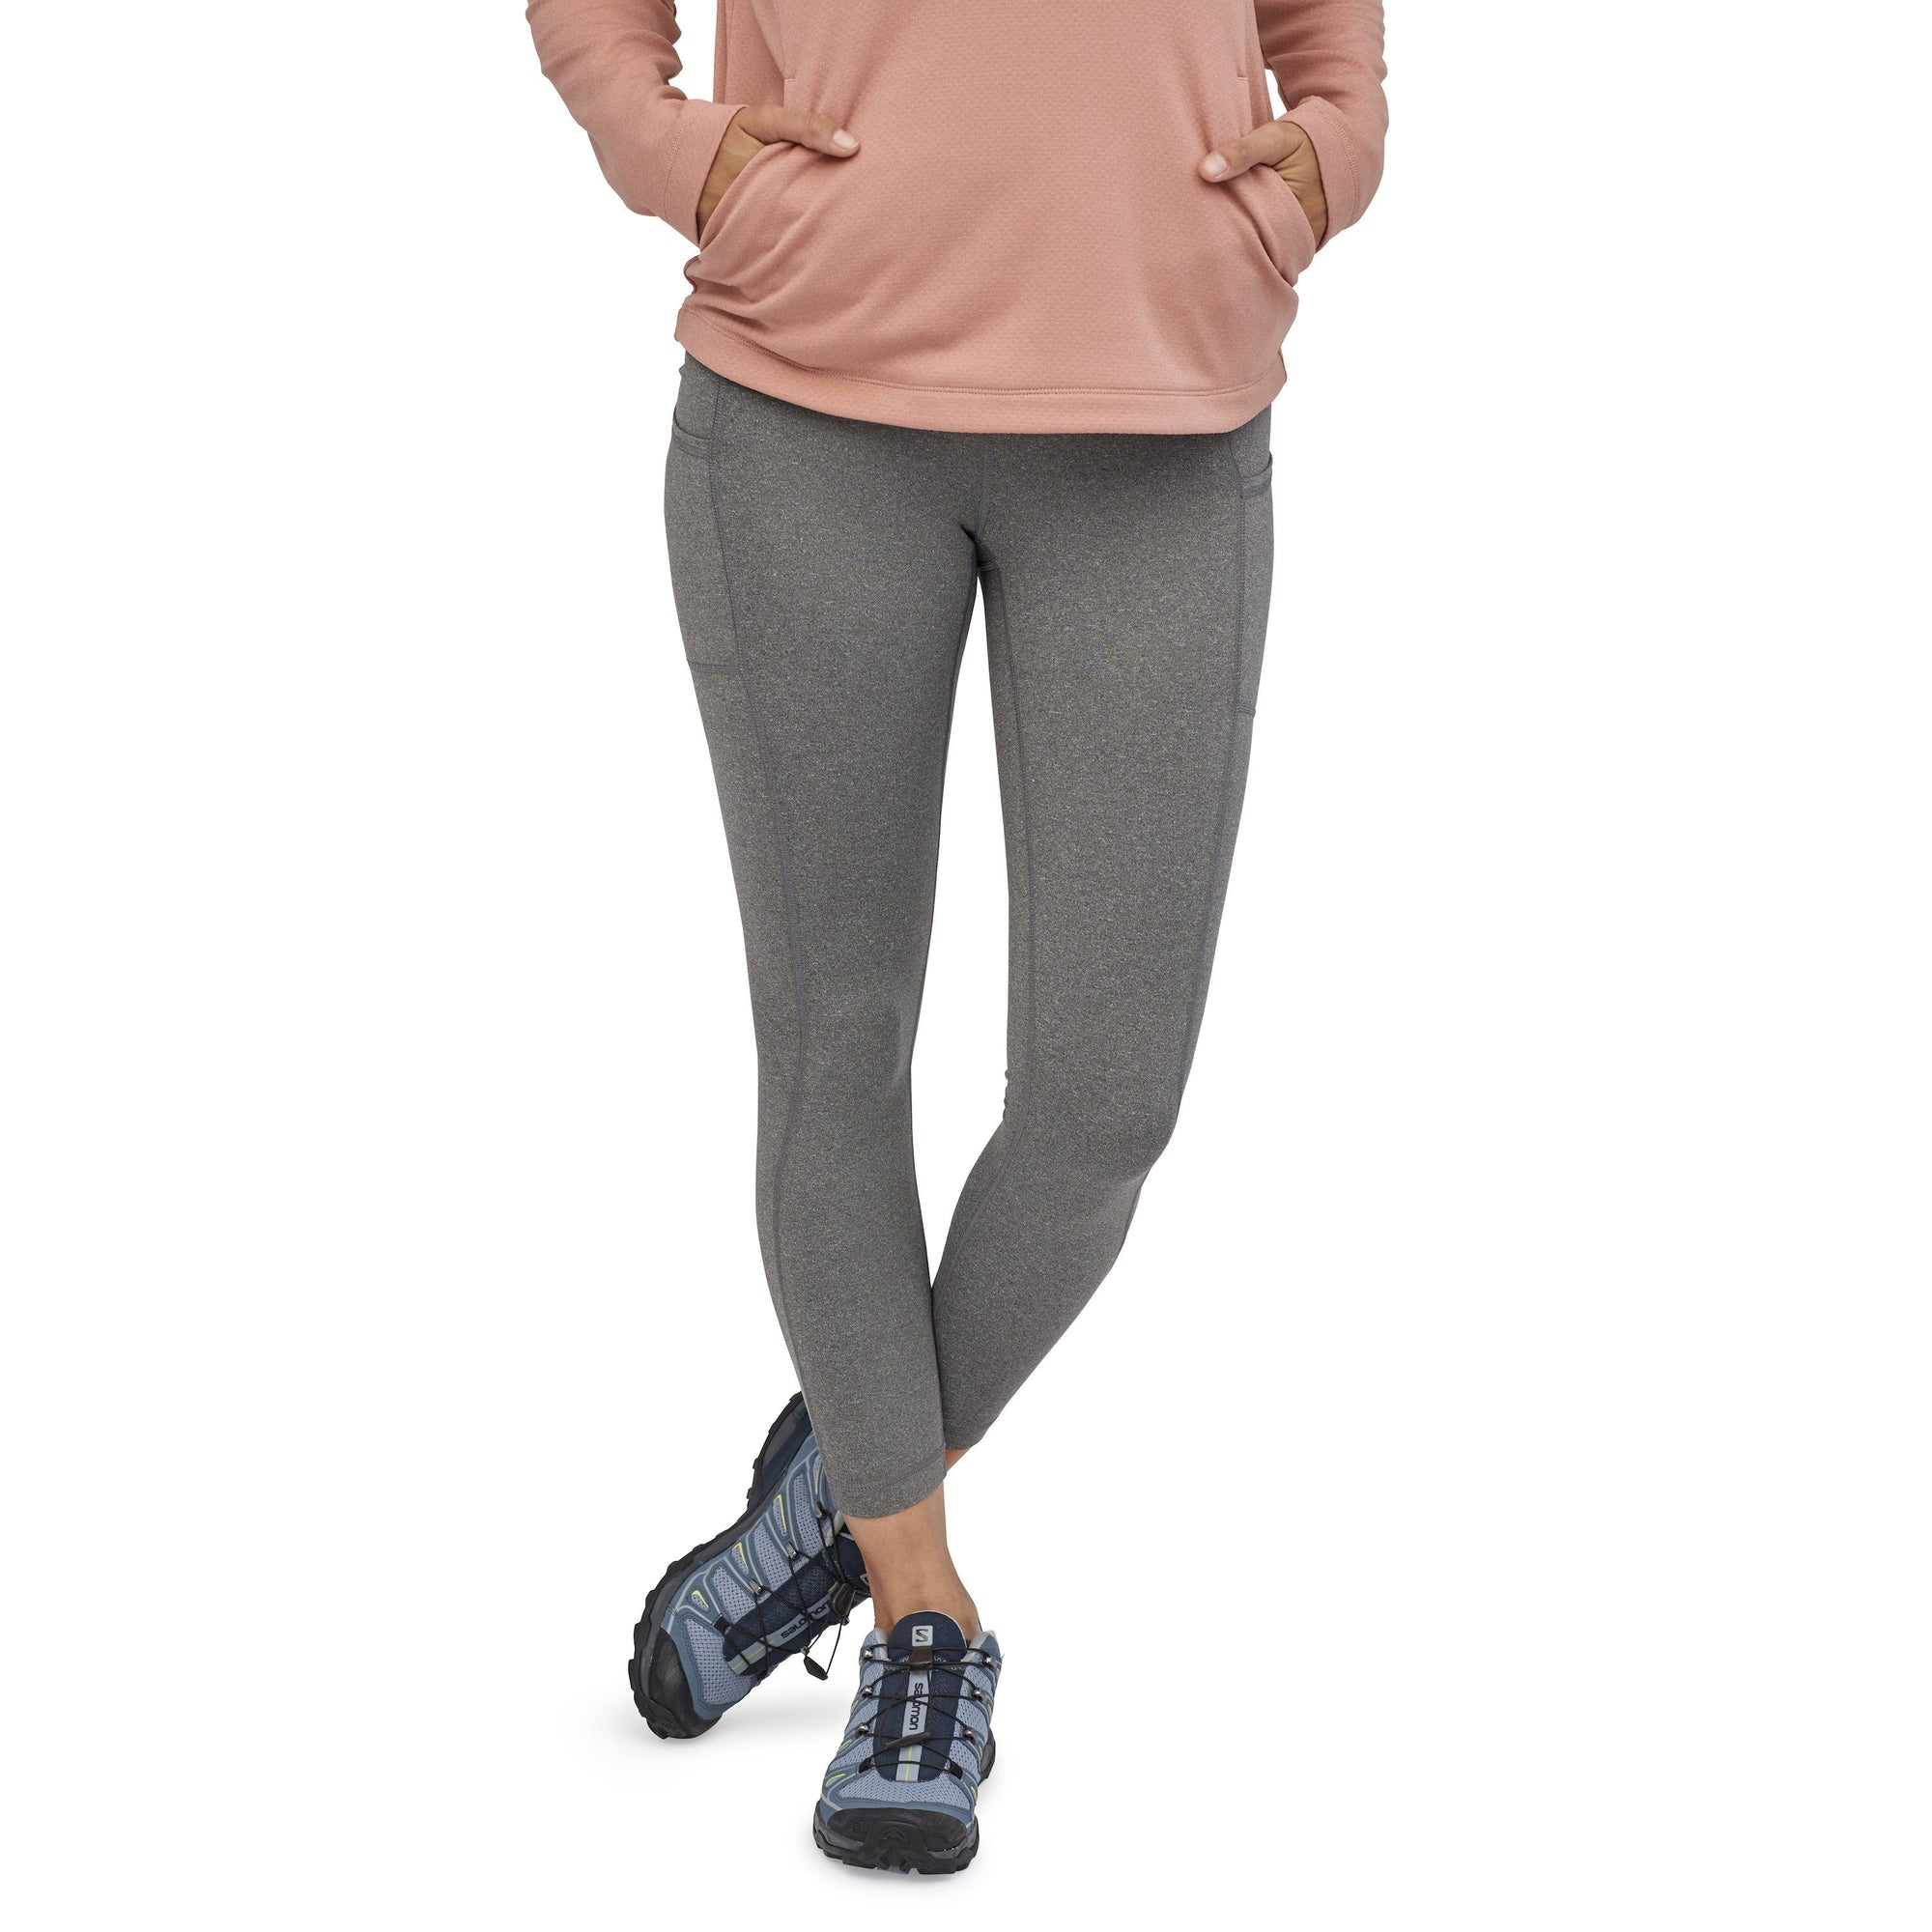 Patagonia - Lightweight Pack Out Tights - Recycled Polyester - Weekendbee - sustainable sportswear